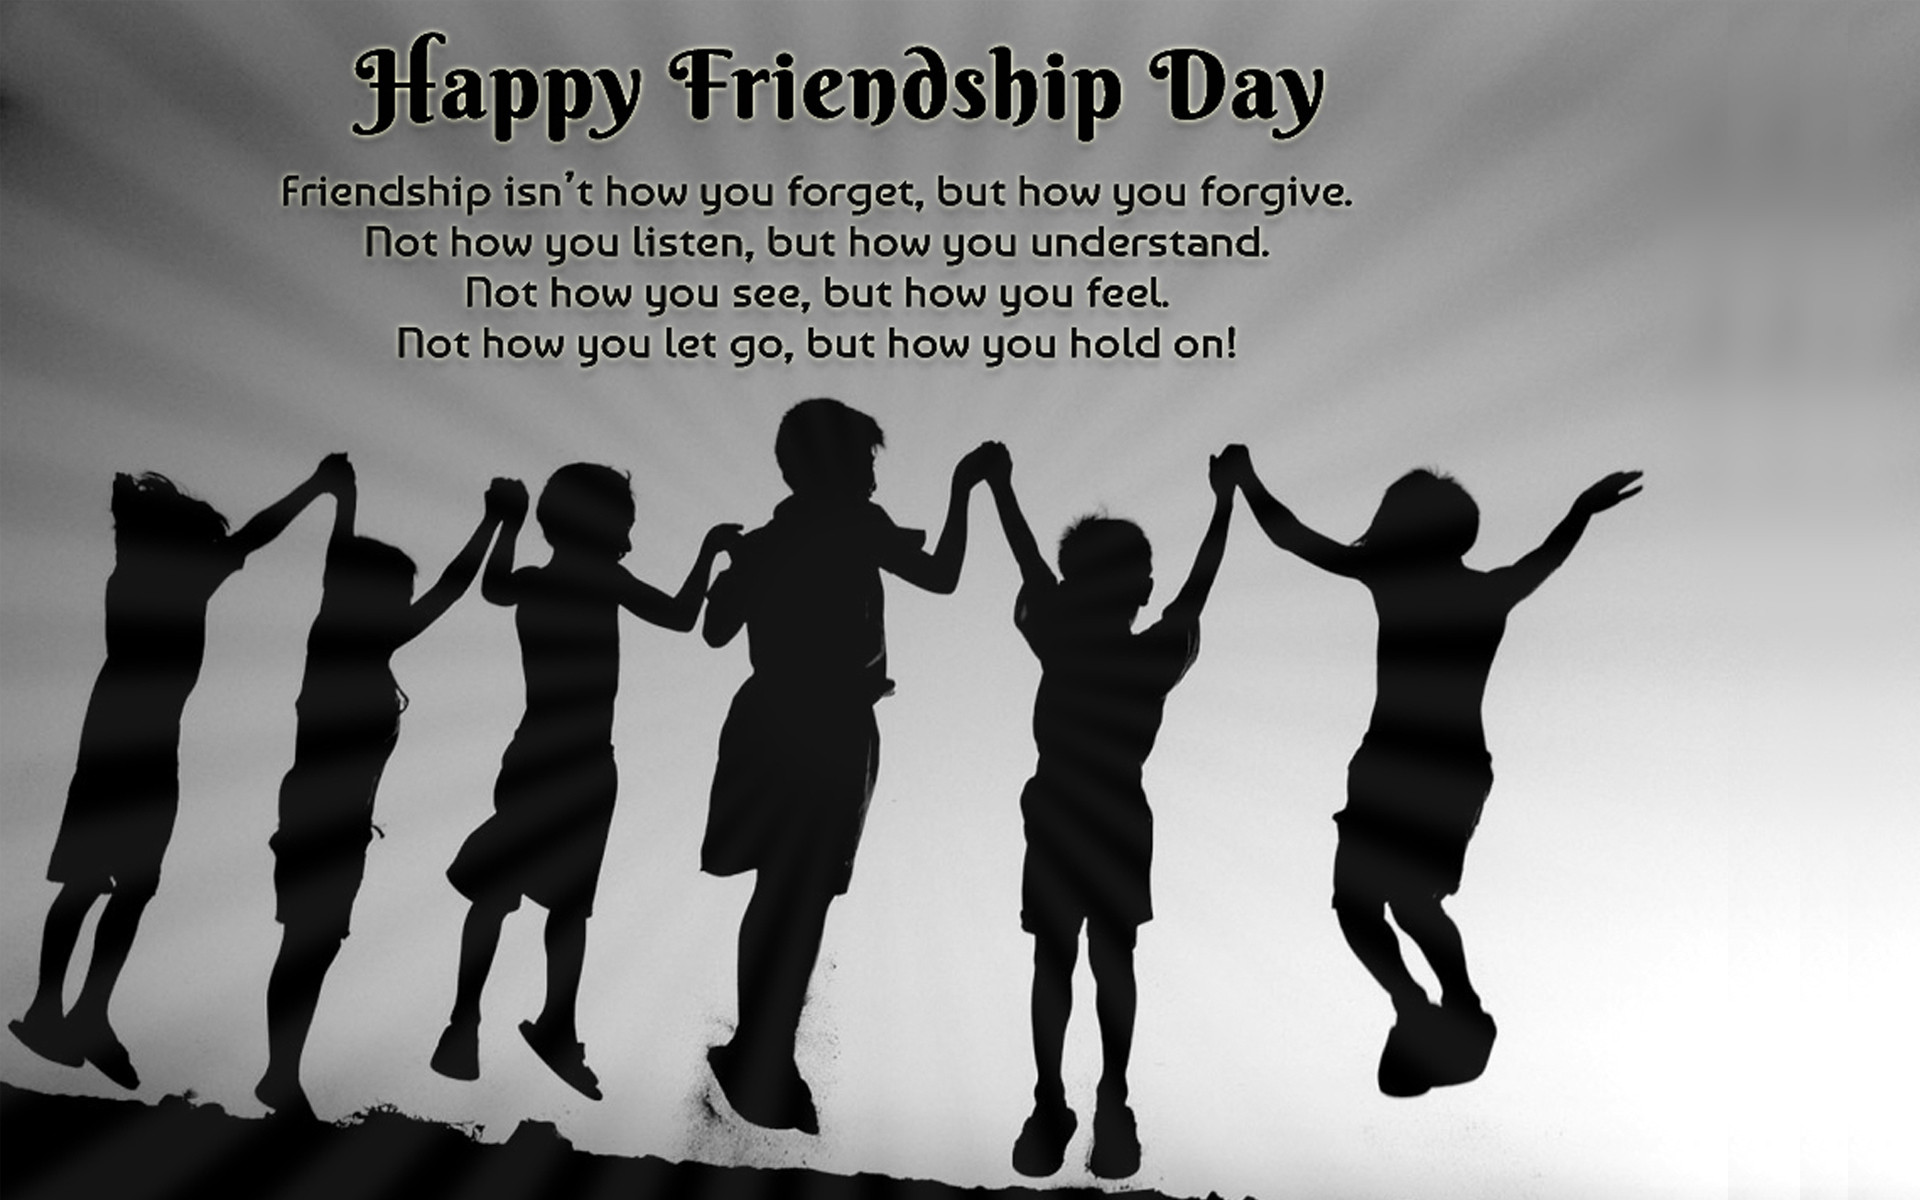 friendship day images for whatsapp dp, profile wallpapers – free